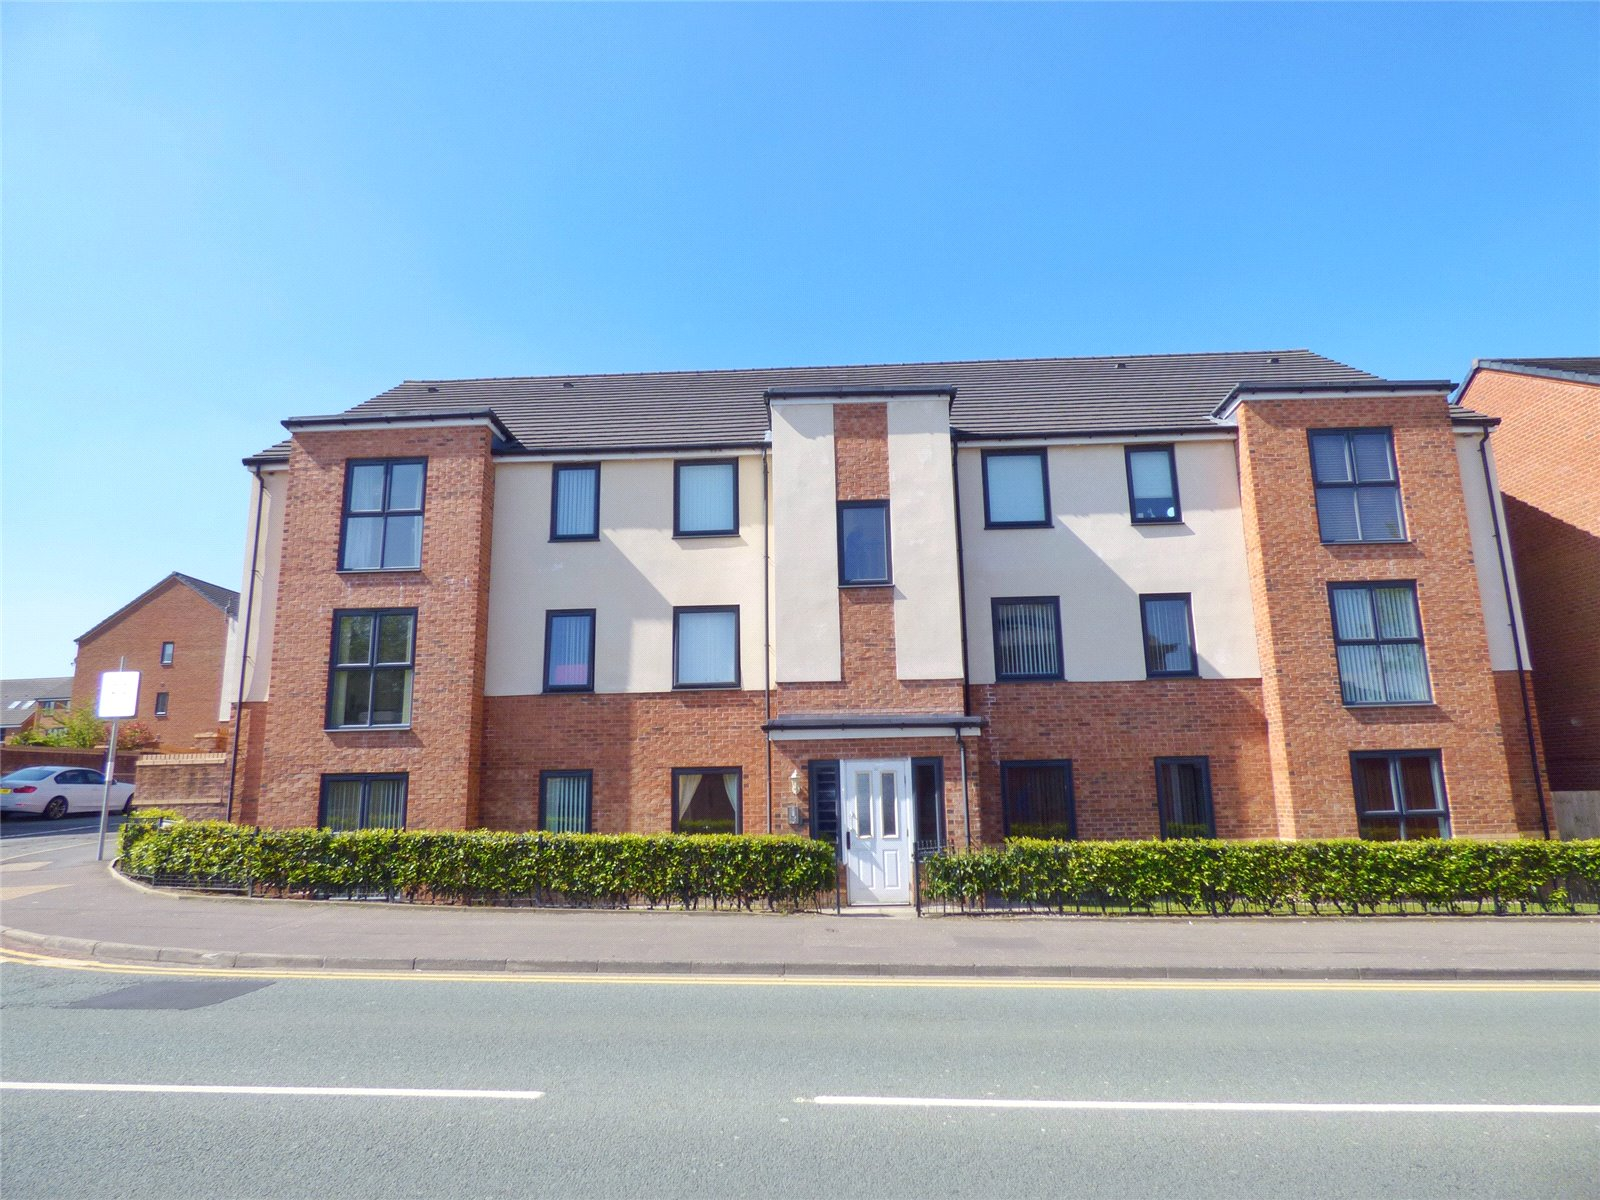 2 Bedrooms Apartment Flat for sale in Manchester Street, Heywood, Greater Manchester, OL10